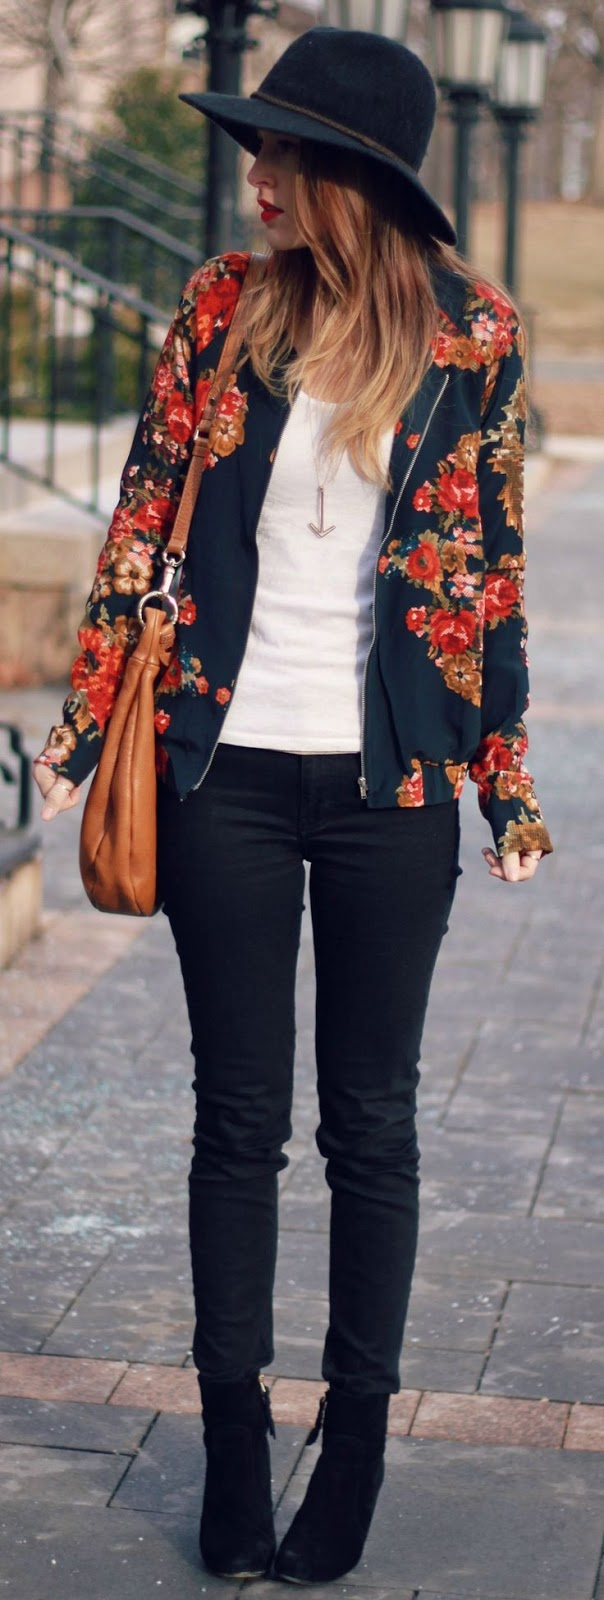 Tapestries in Bloom Silk Black Floral Print Jacket $93